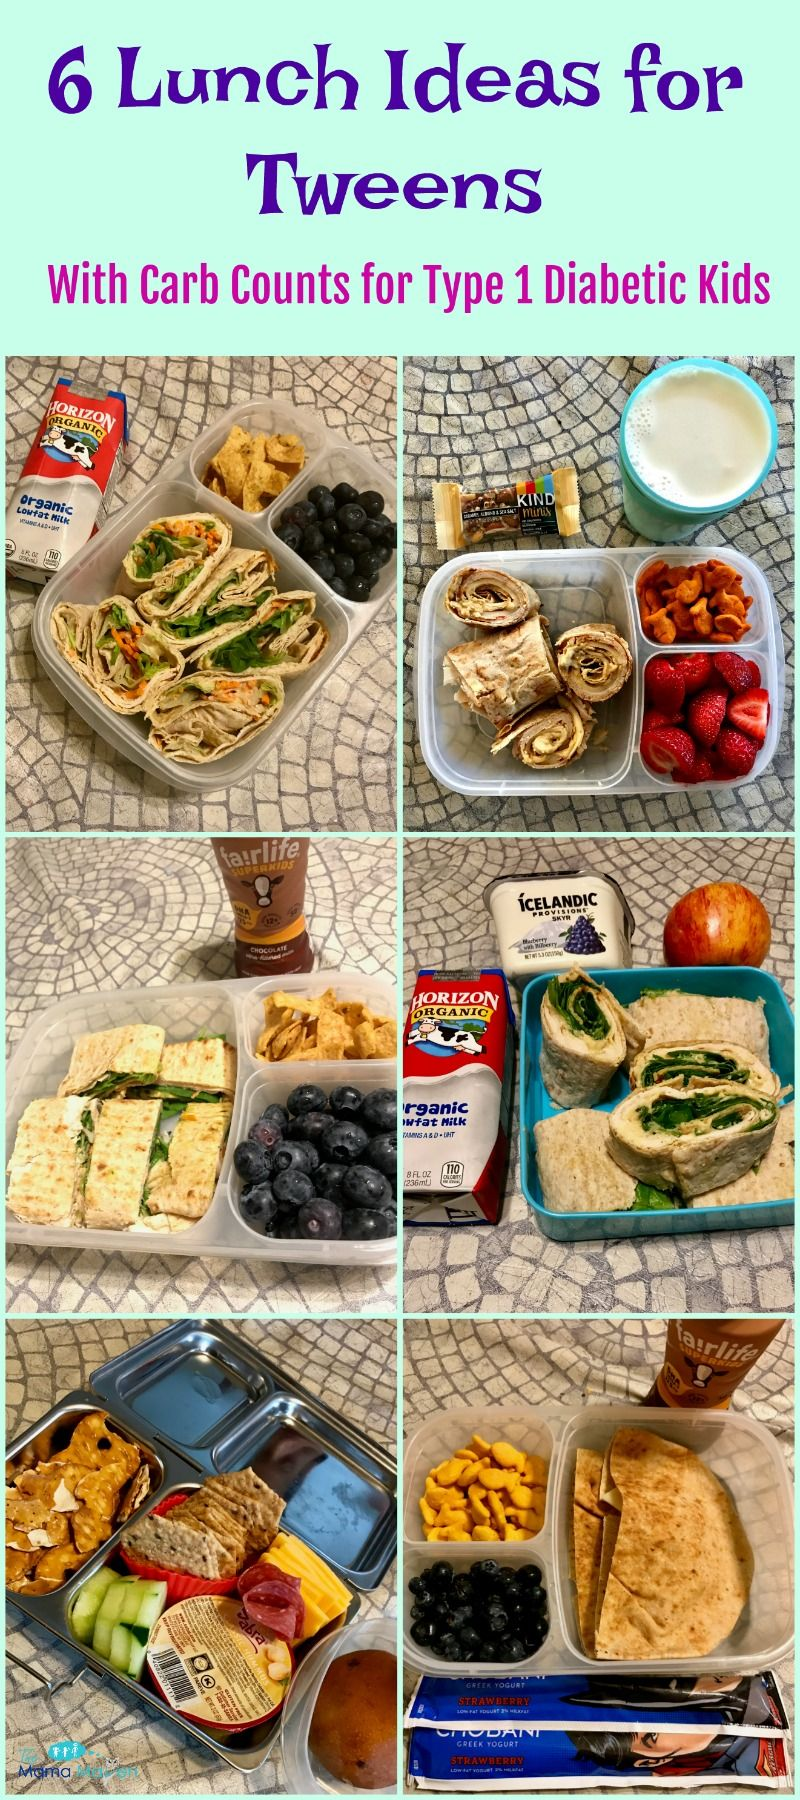 6 lunch ideas for tweens - with carb counts for type 1 diabetic kids